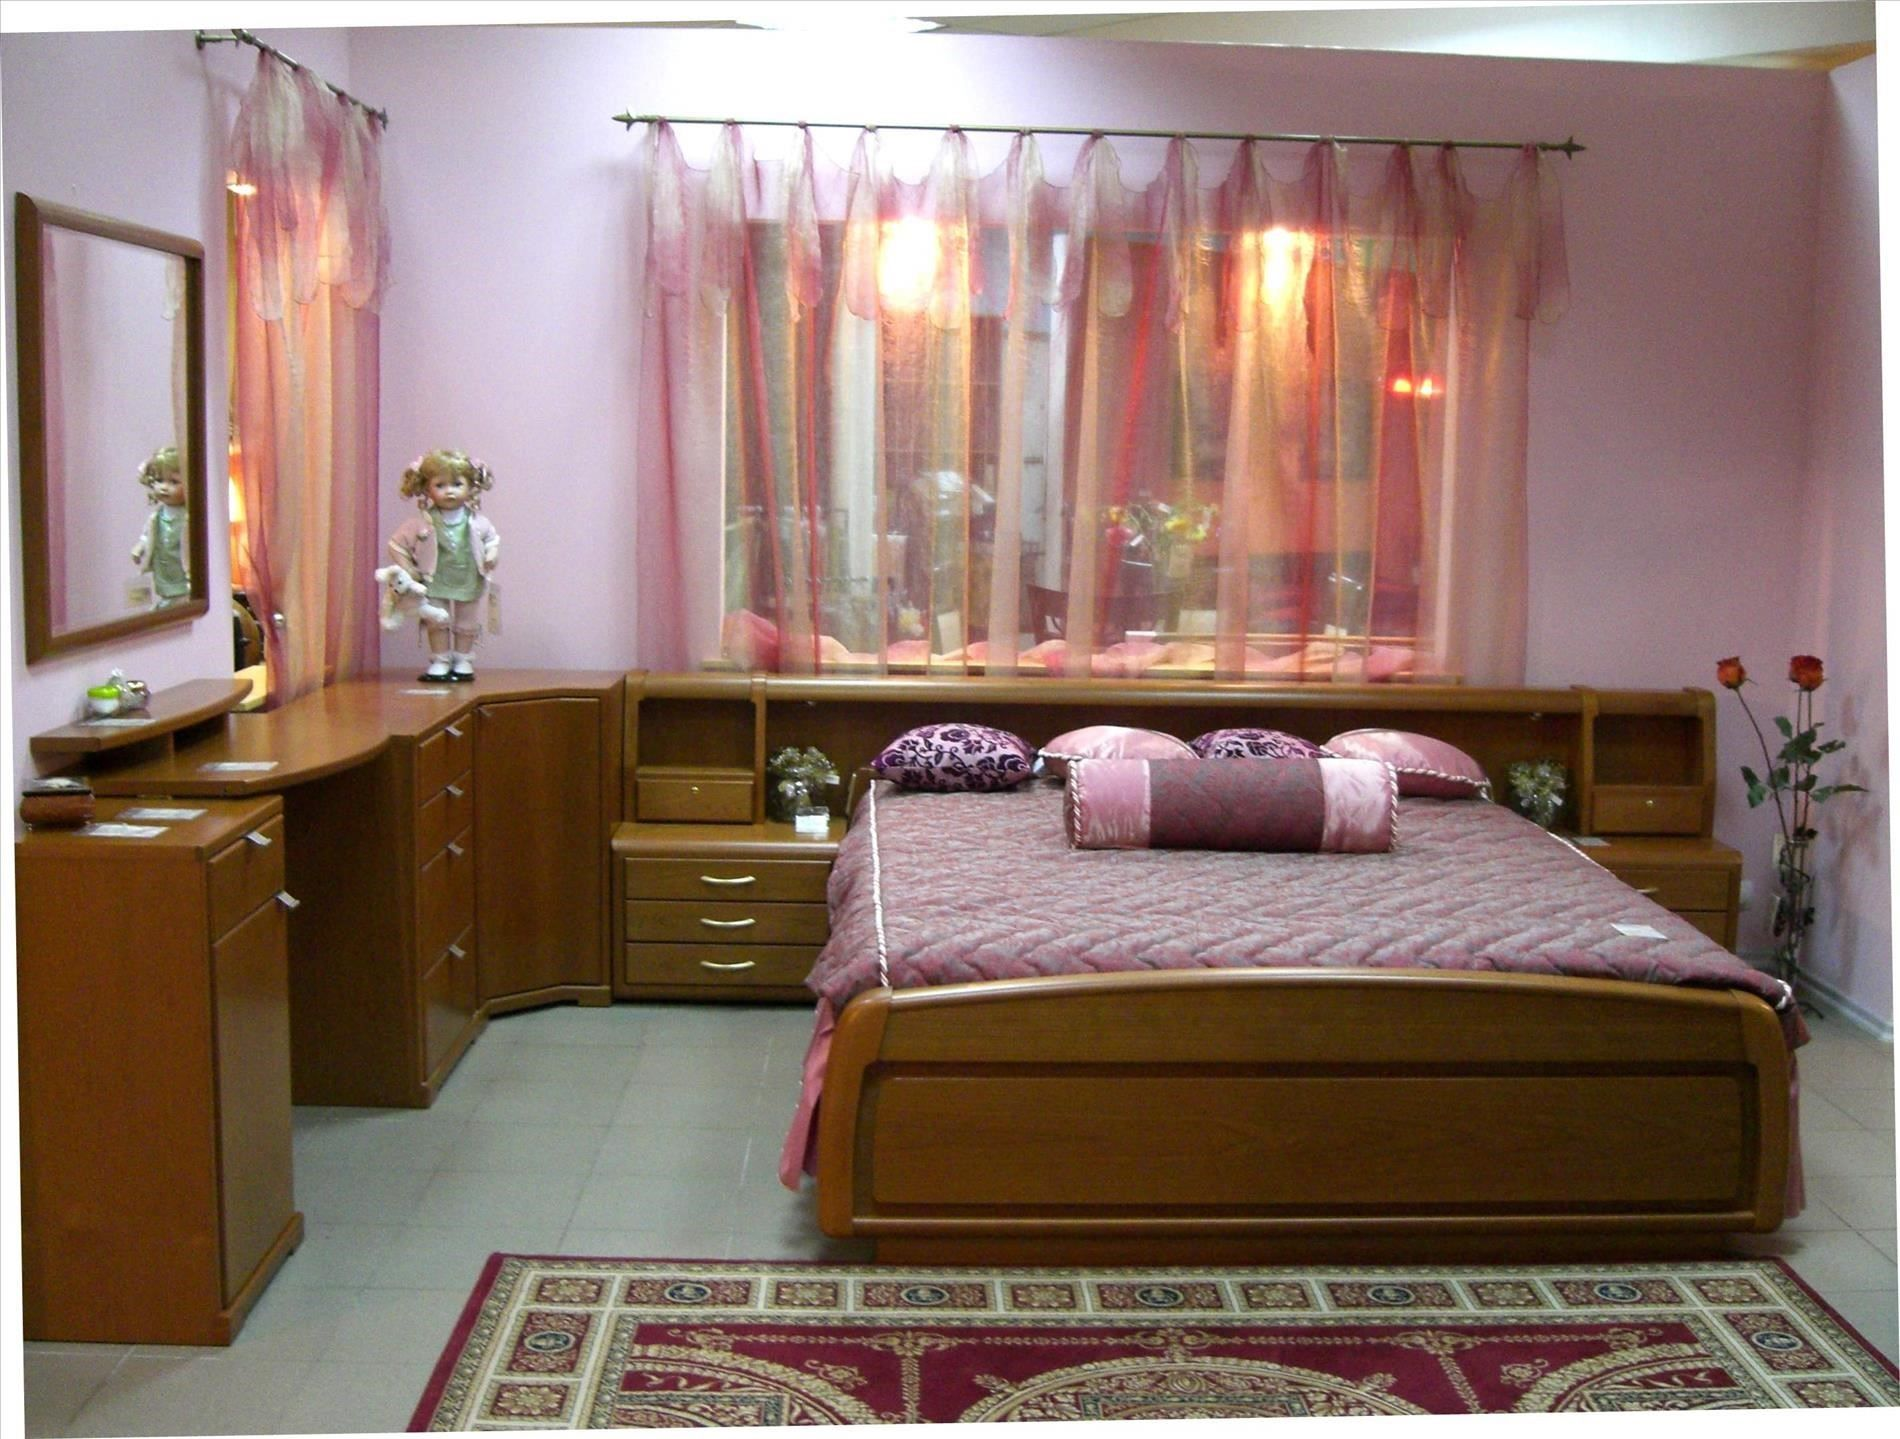 Bedroom Middle Class House Interior Design - Home Architec ...